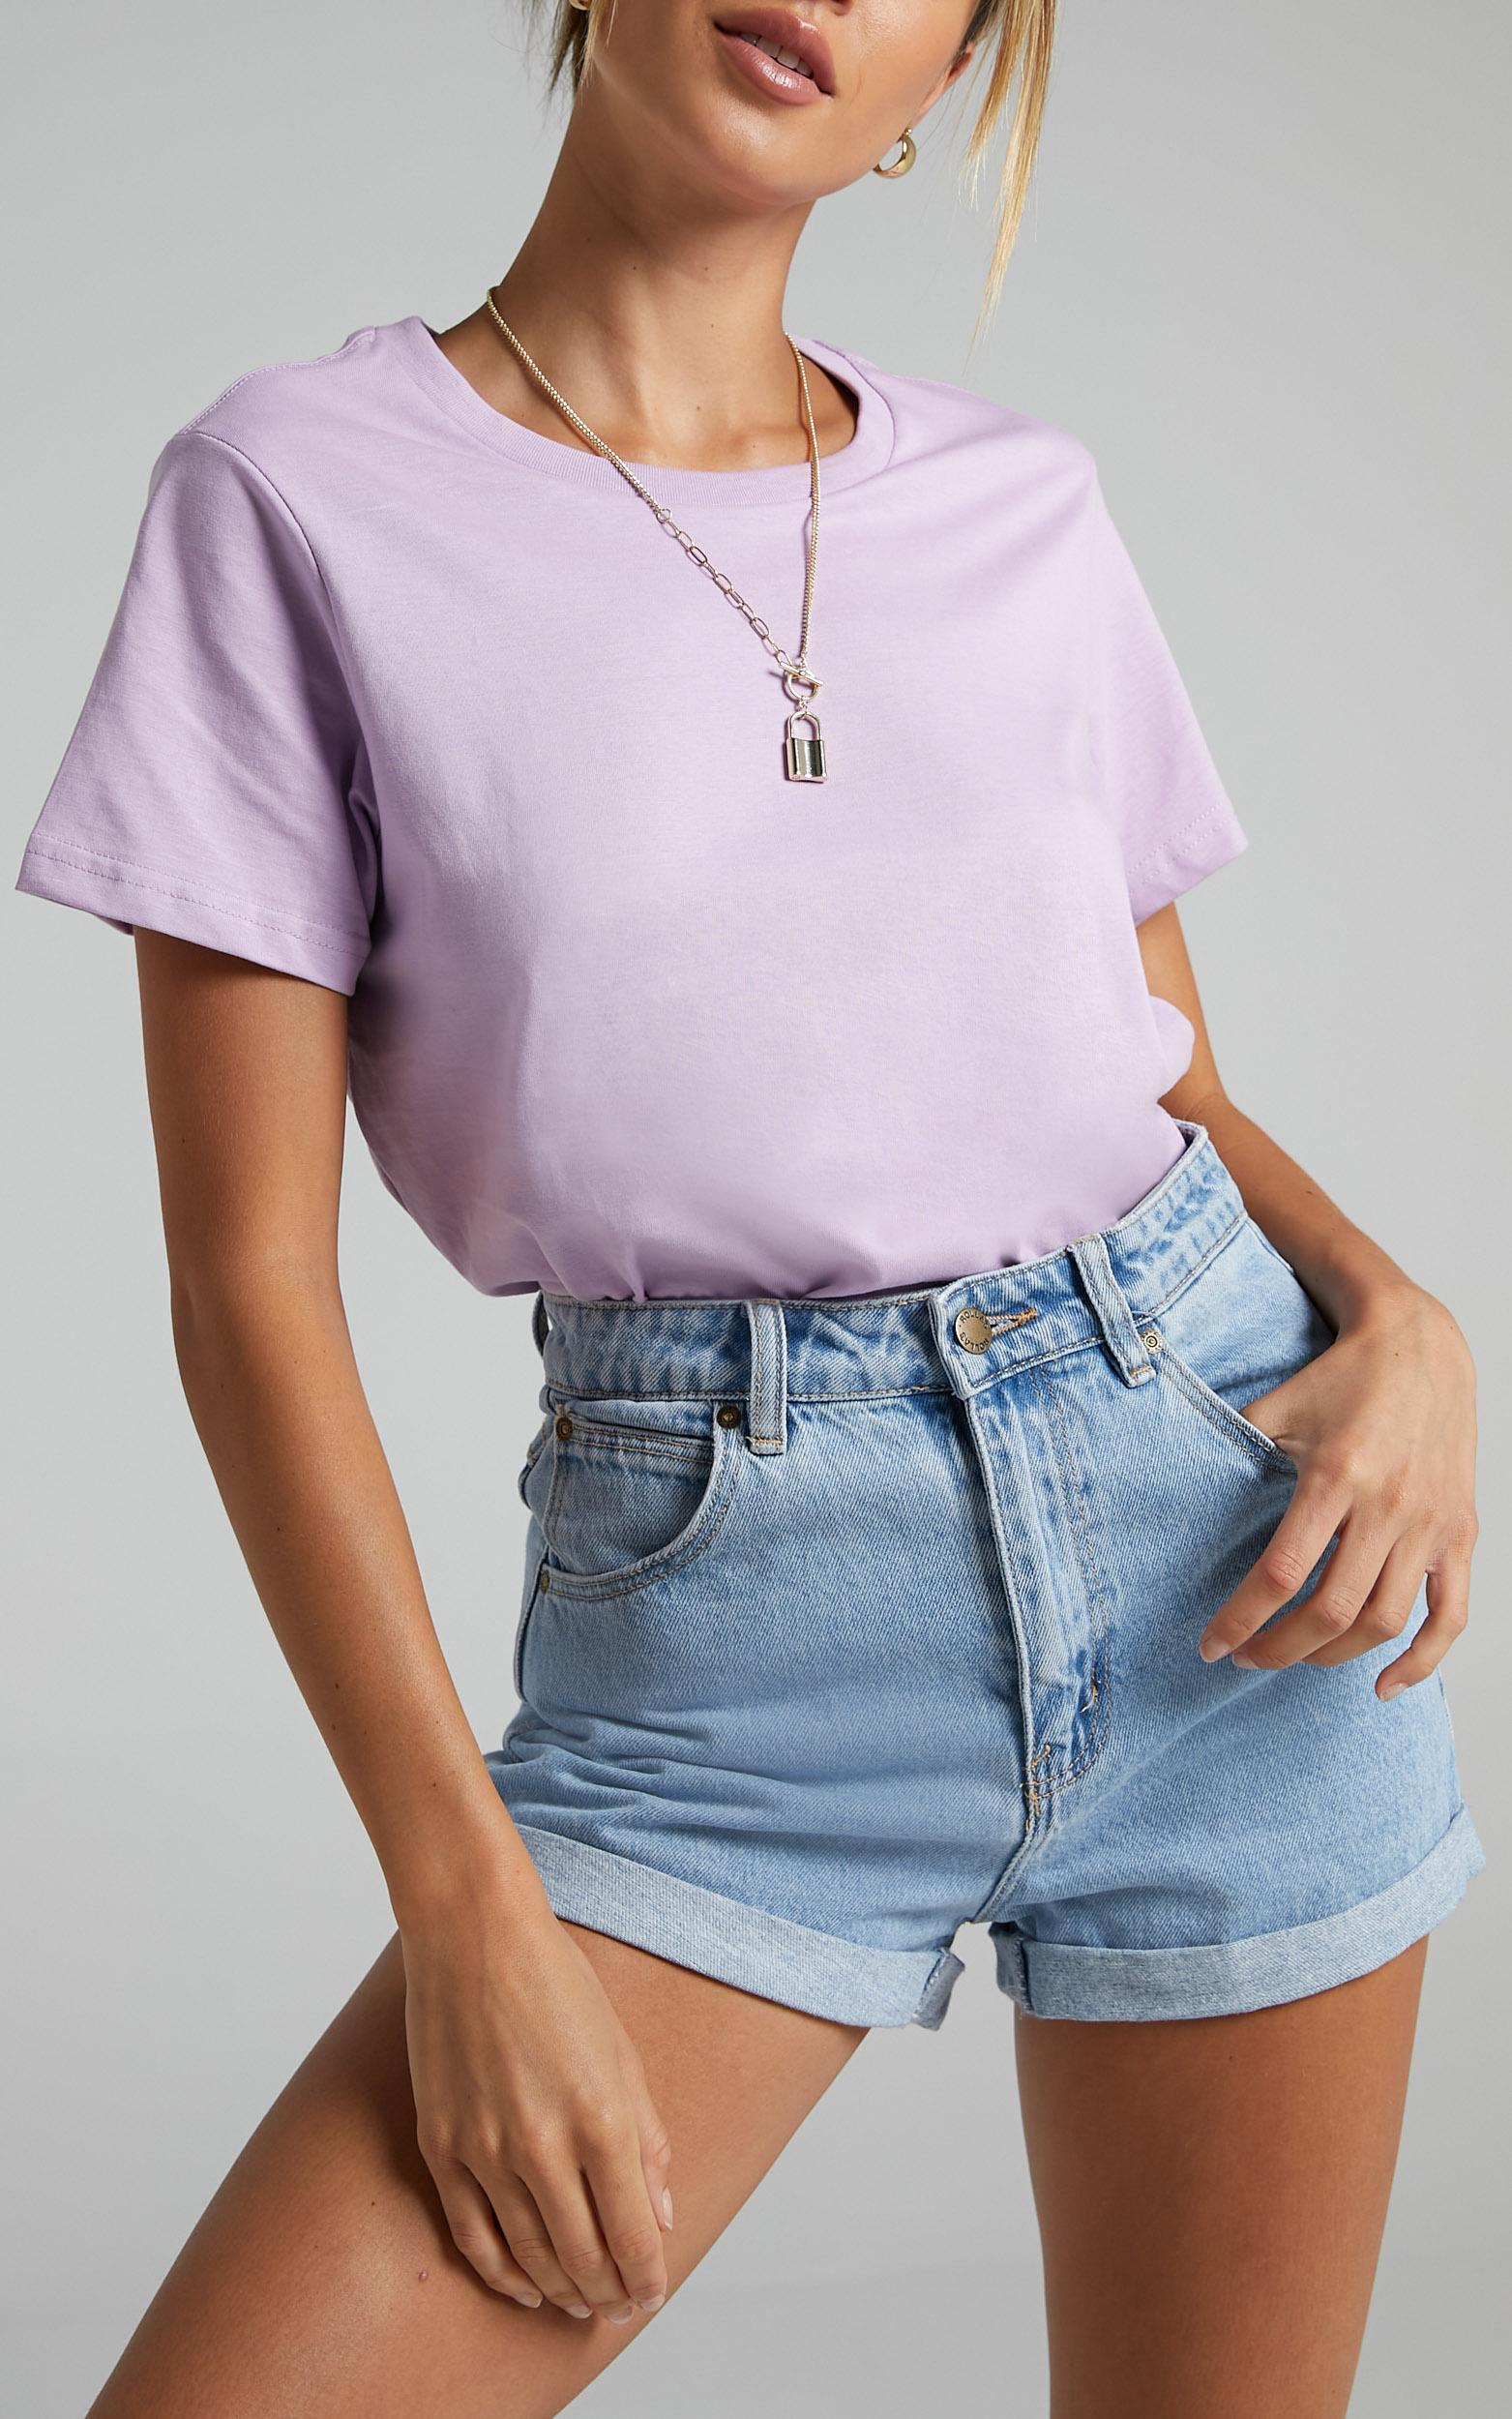 AS Colour - Maple Tee in Lavender - XS, Purple, hi-res image number null